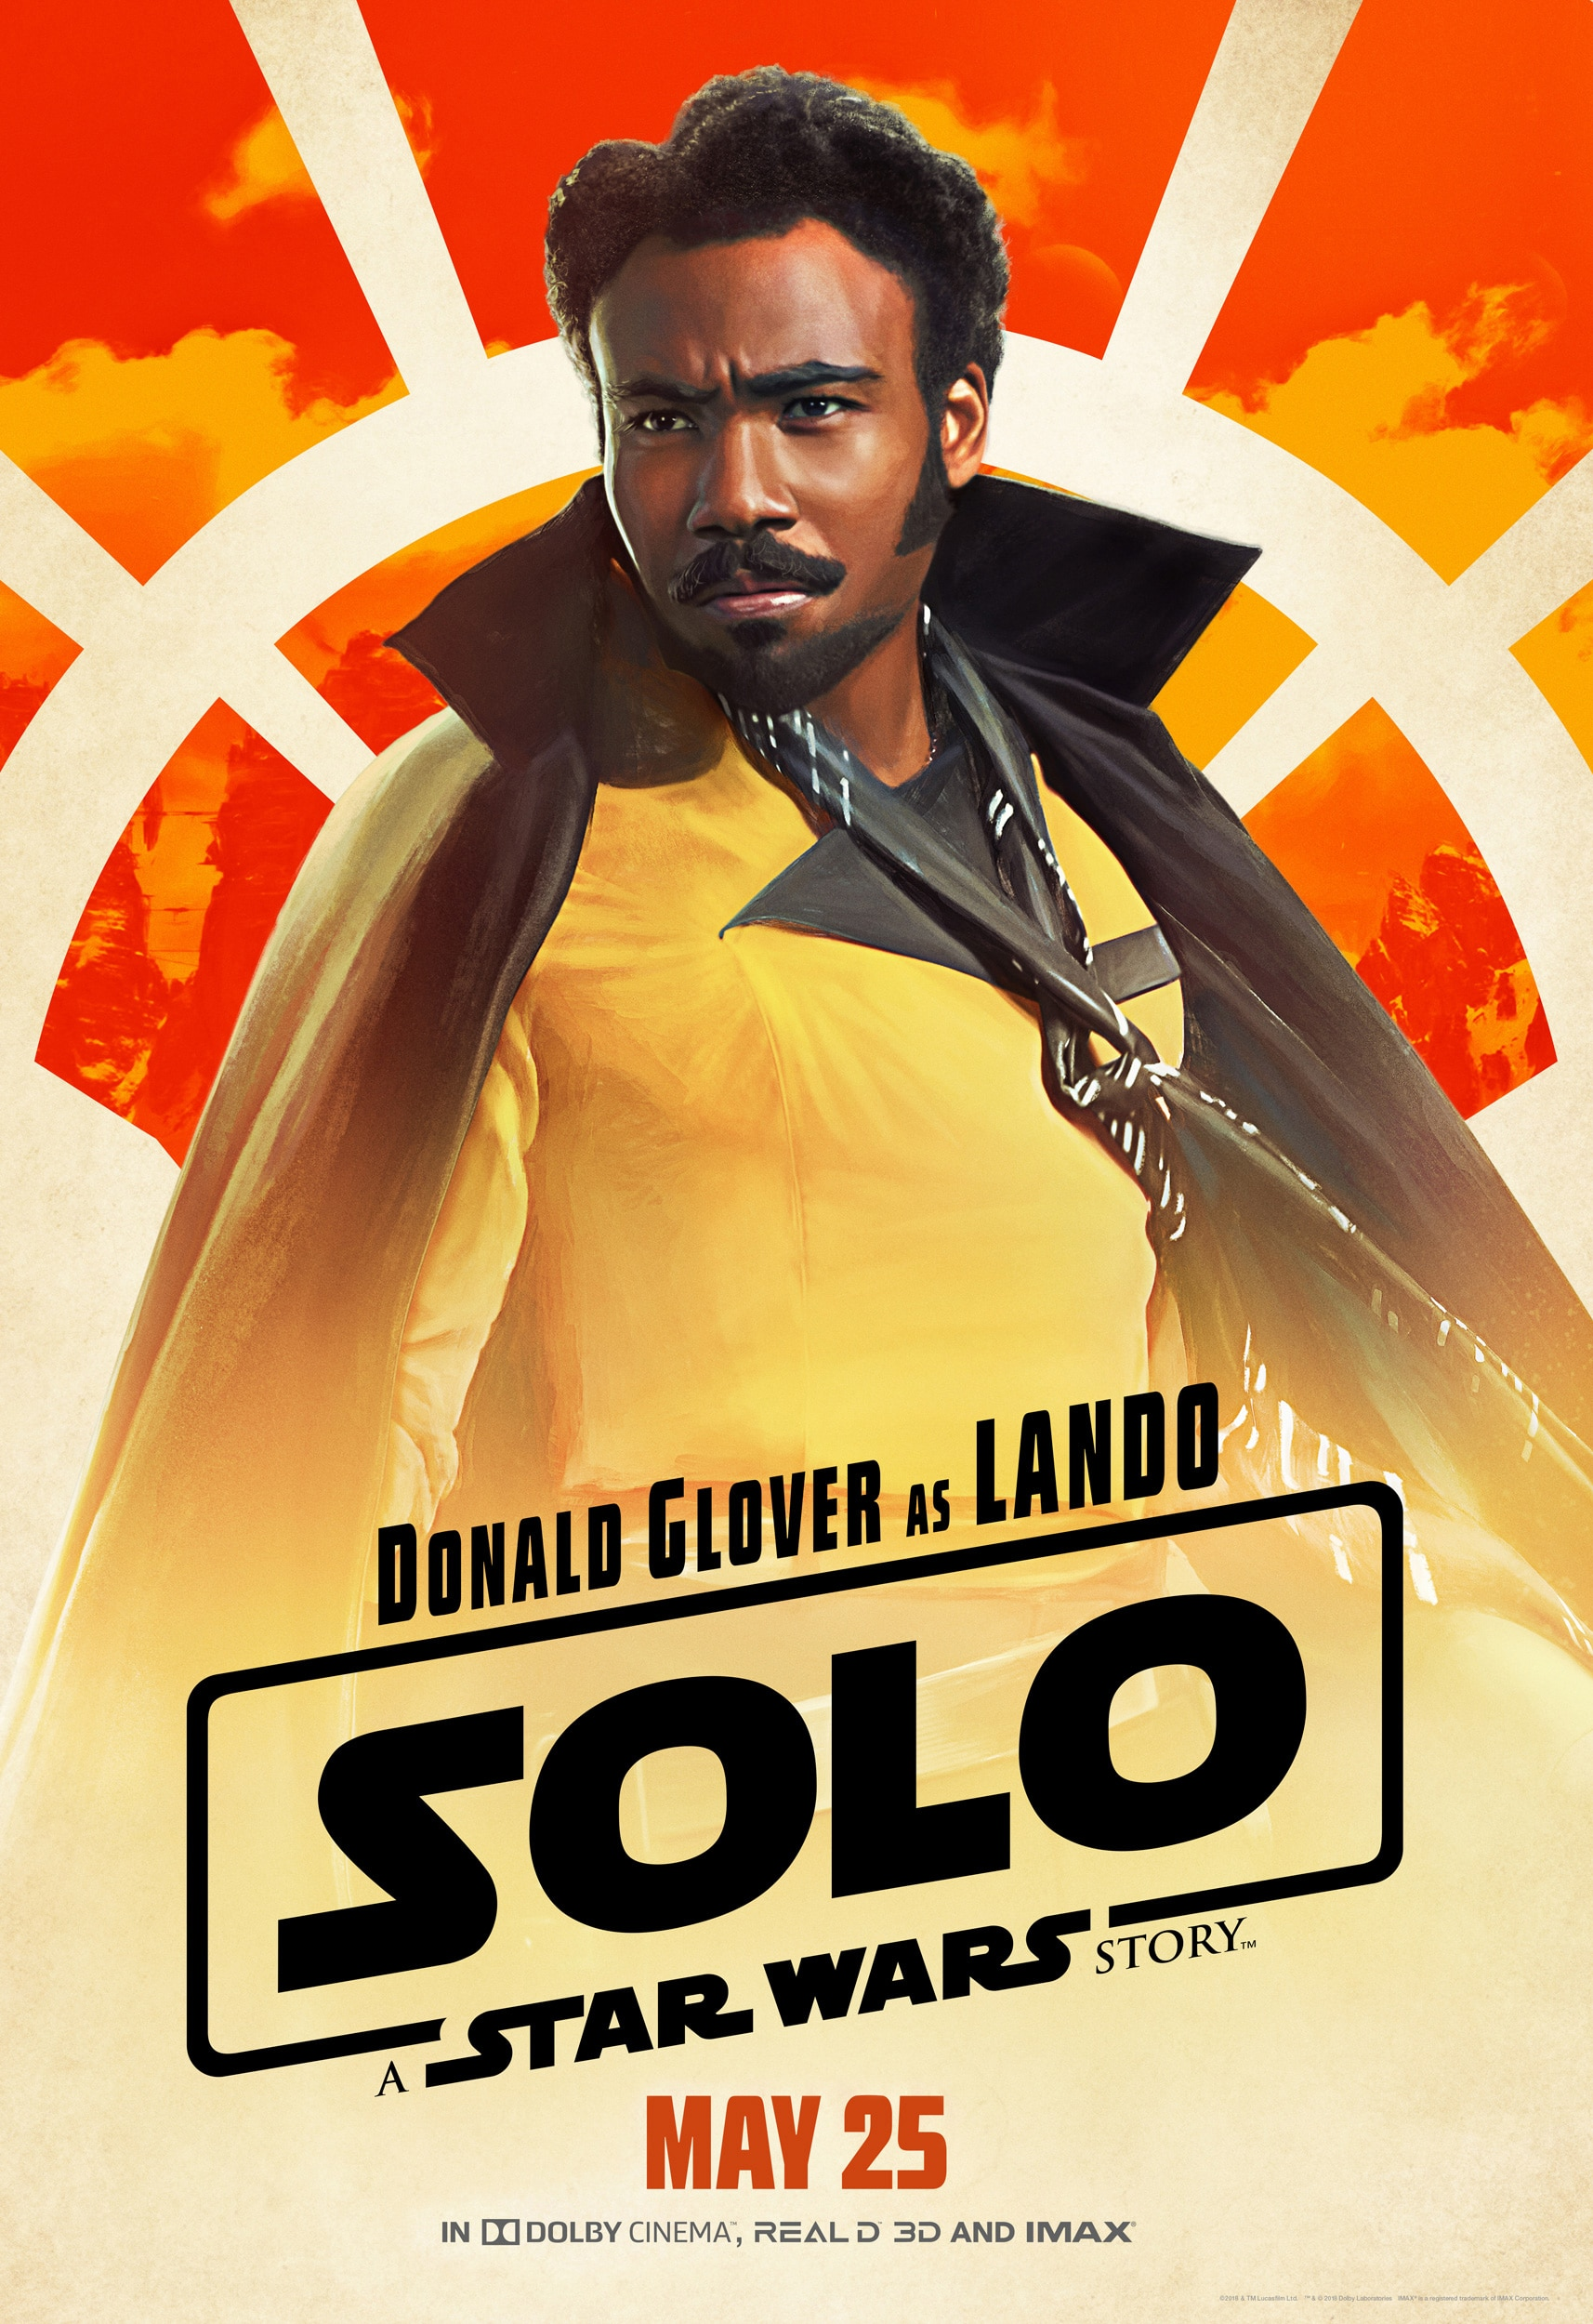 SOLO: A STAR WARS STORY Free Coloring Pages + Activity Sheets! #HanSoloEvent #HanSolo